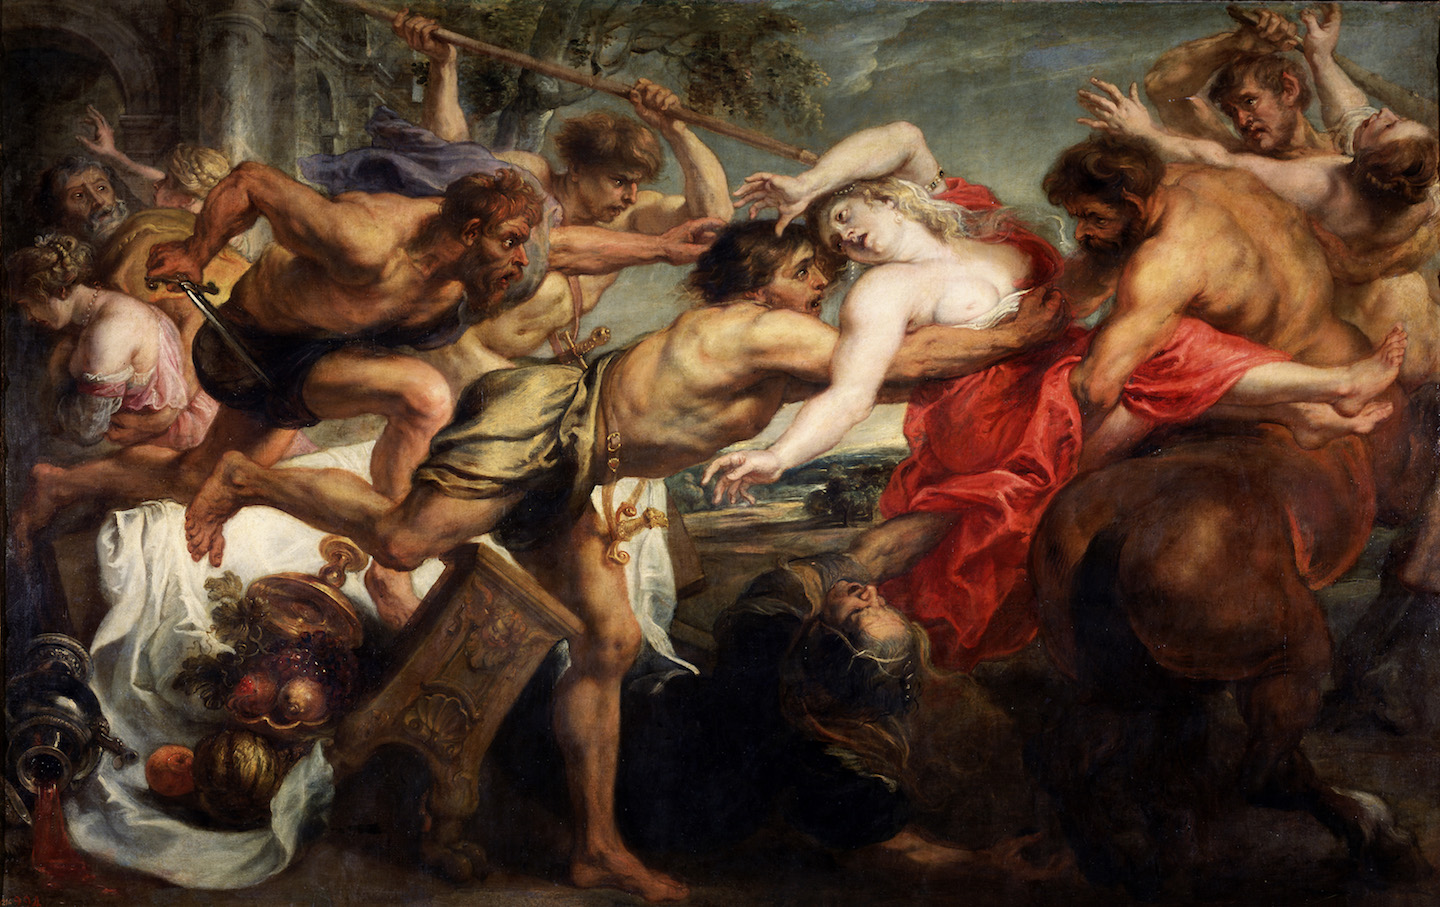 Rewriting Roman Myths From the Perspective of Their Victims